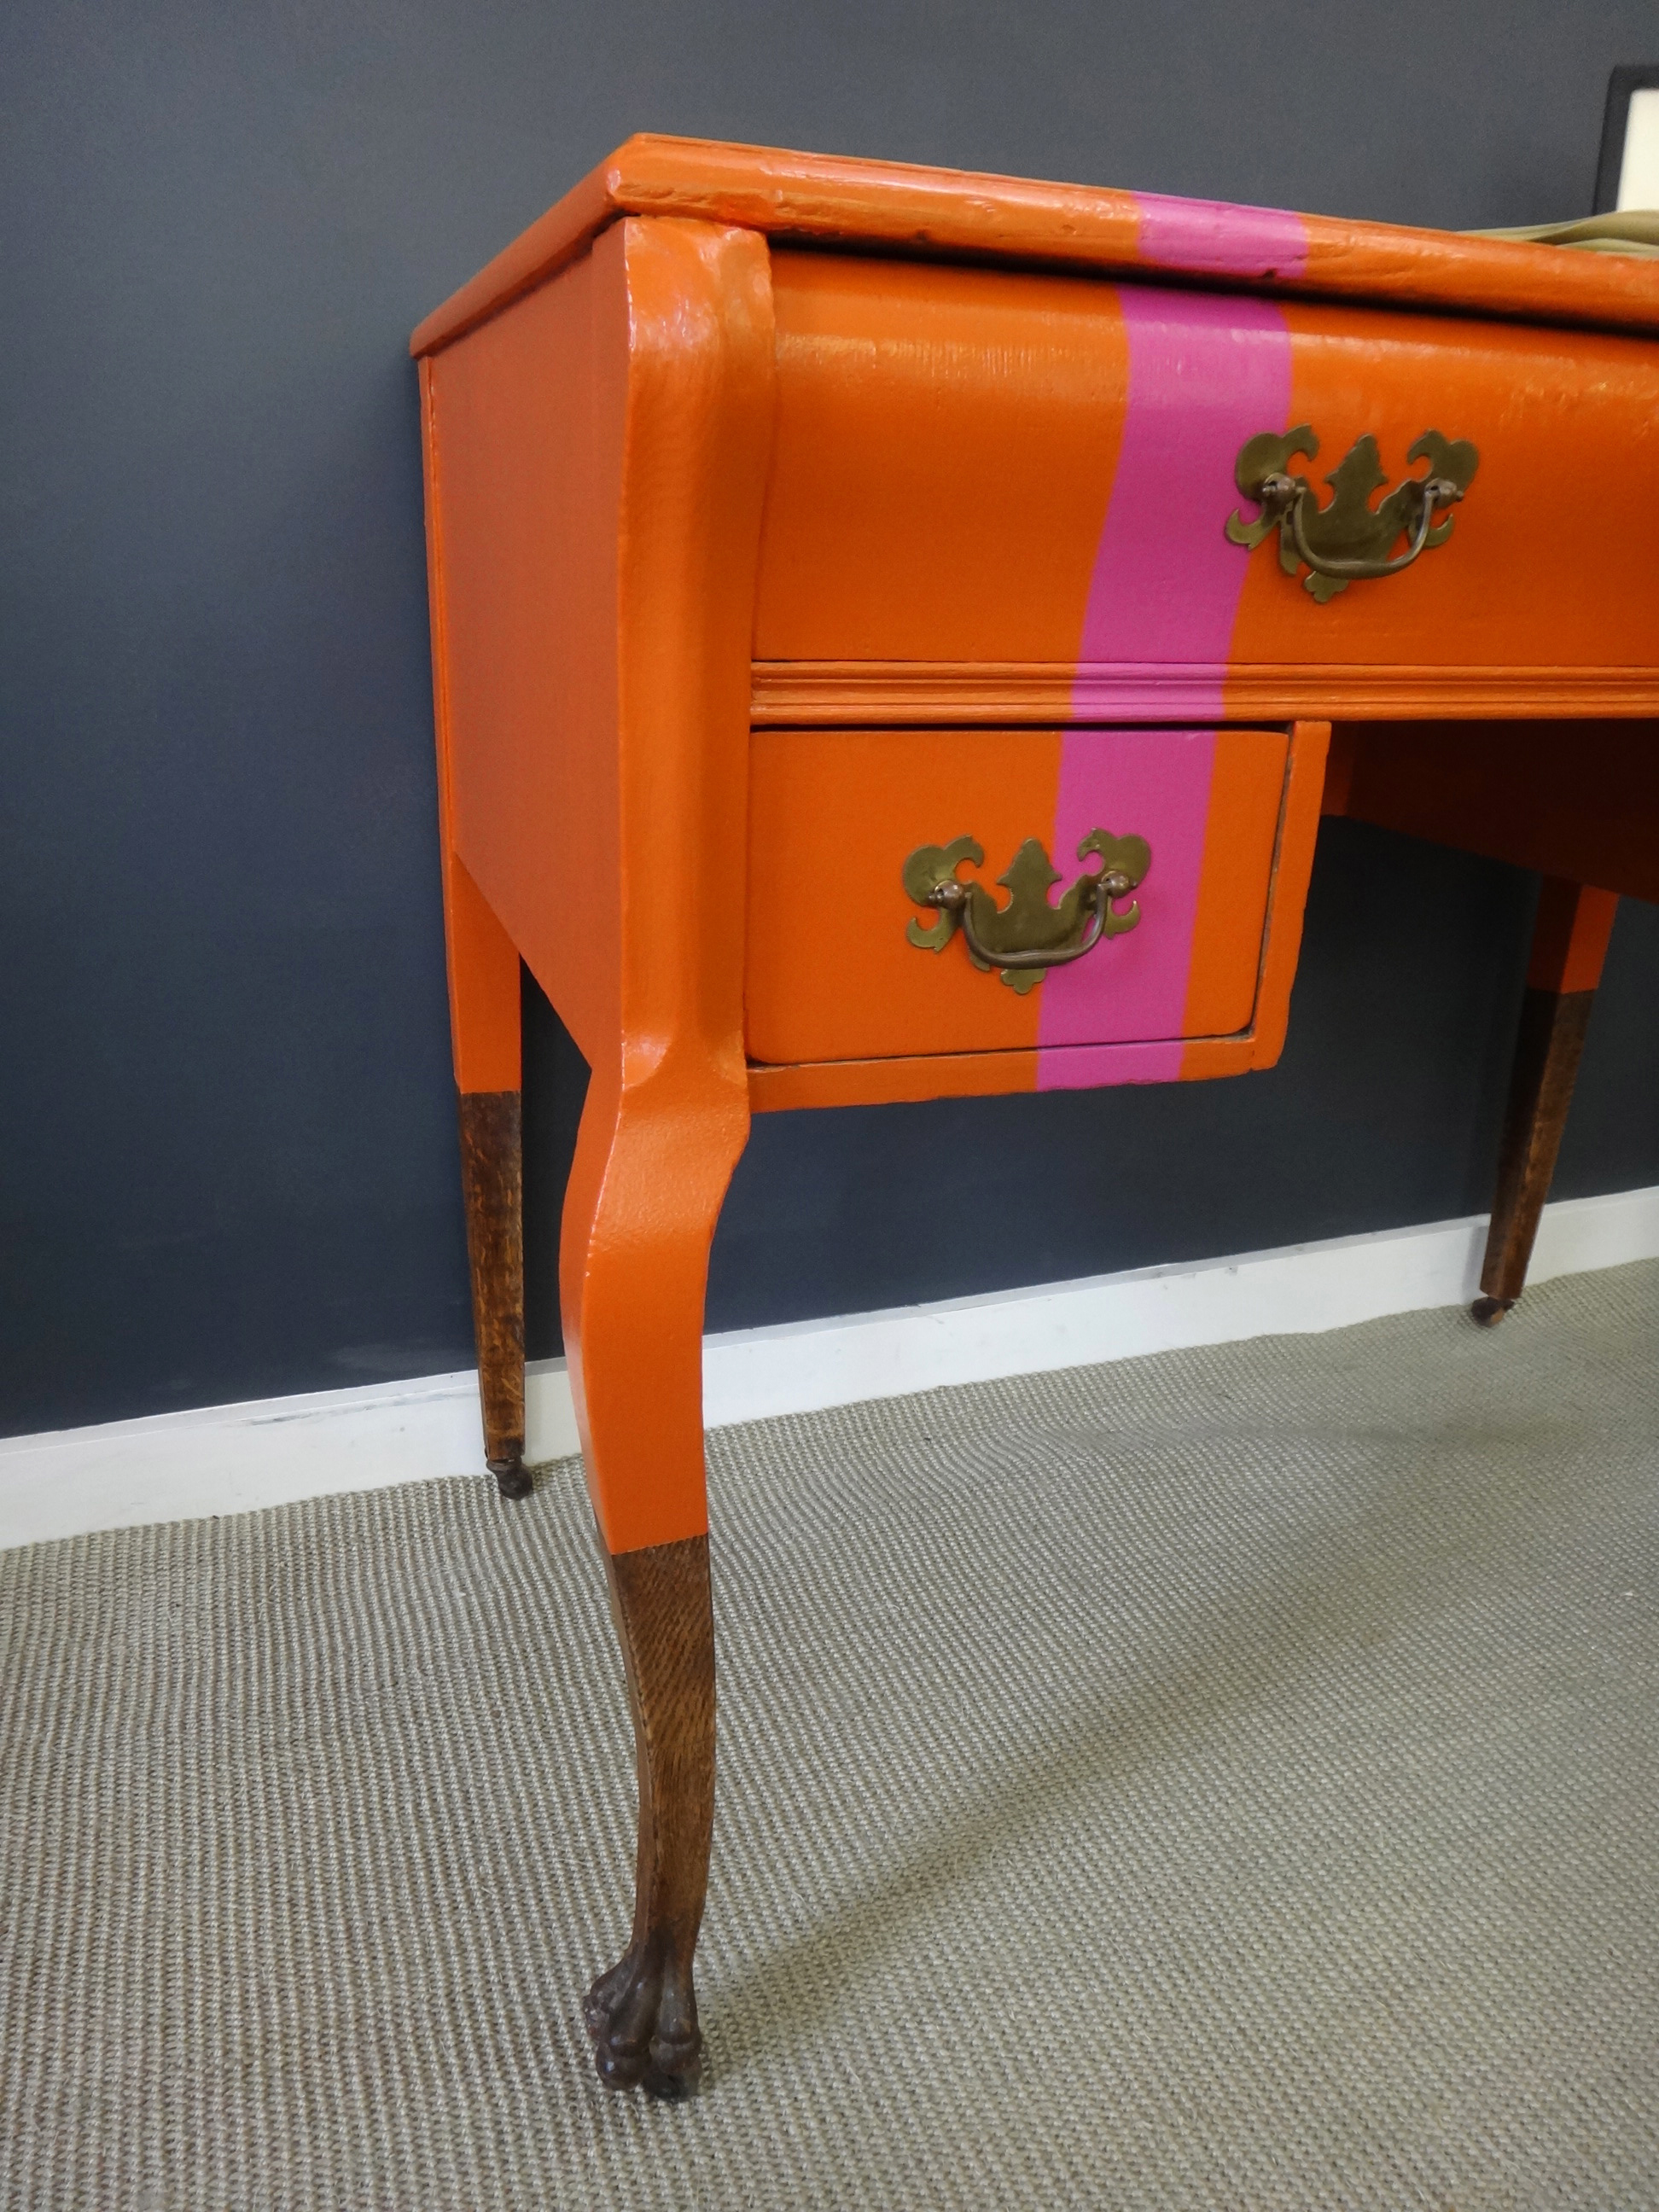 Spunked-Up Antique Vanity